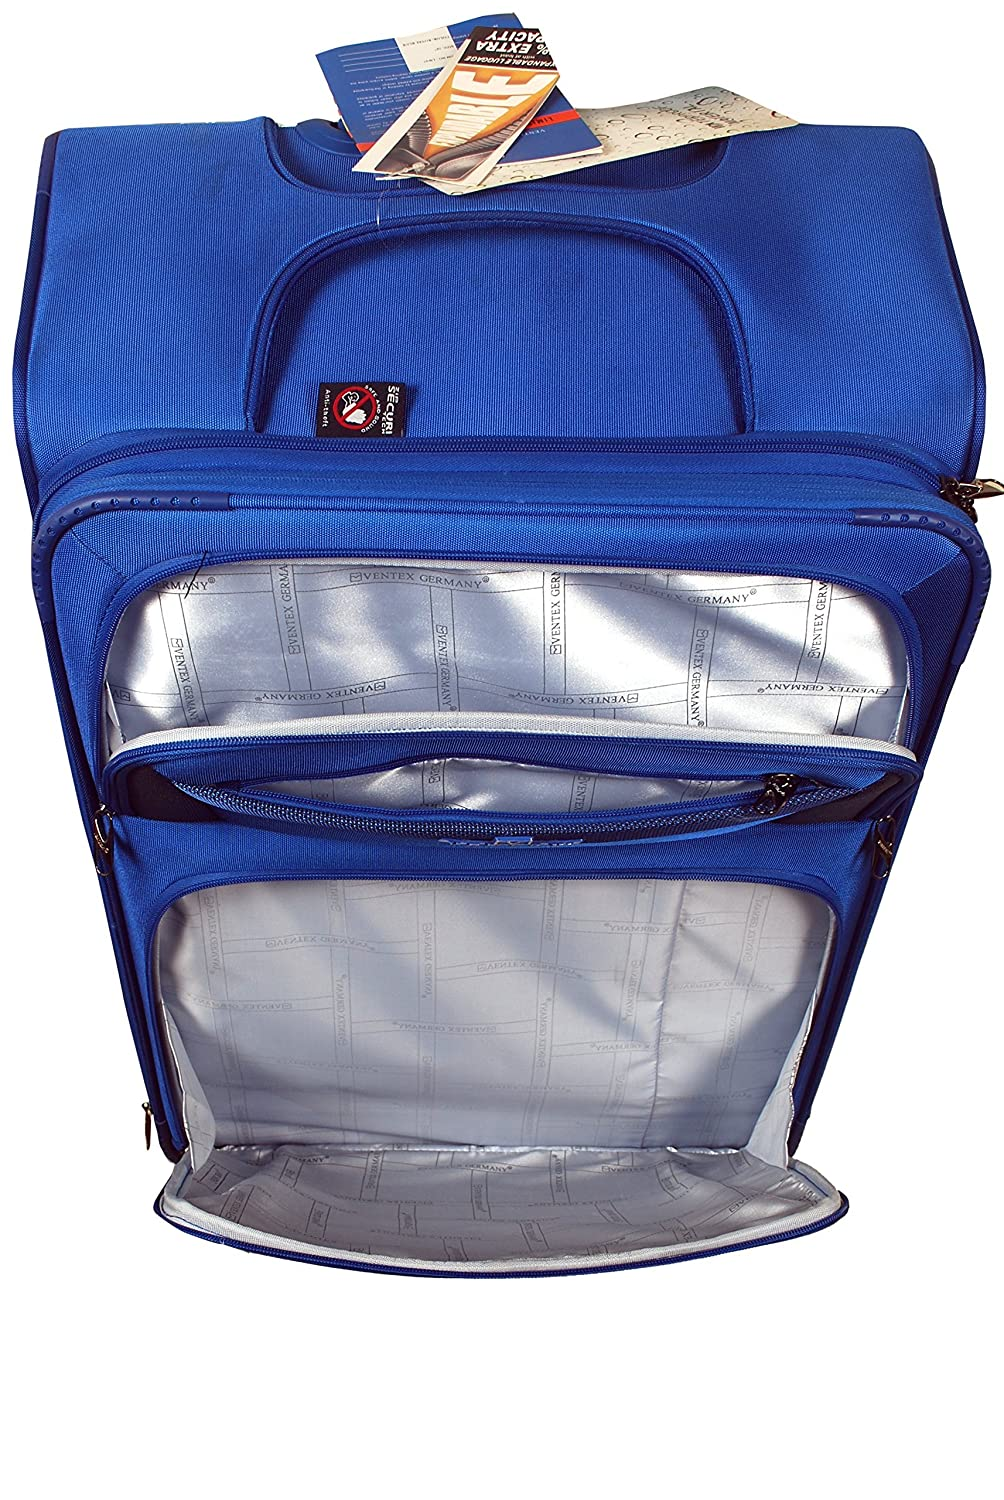 2ffde1389f27 Ventex Polyester Royal Blue Suitcase   Trolley Bag  Amazon.in  Bags ...